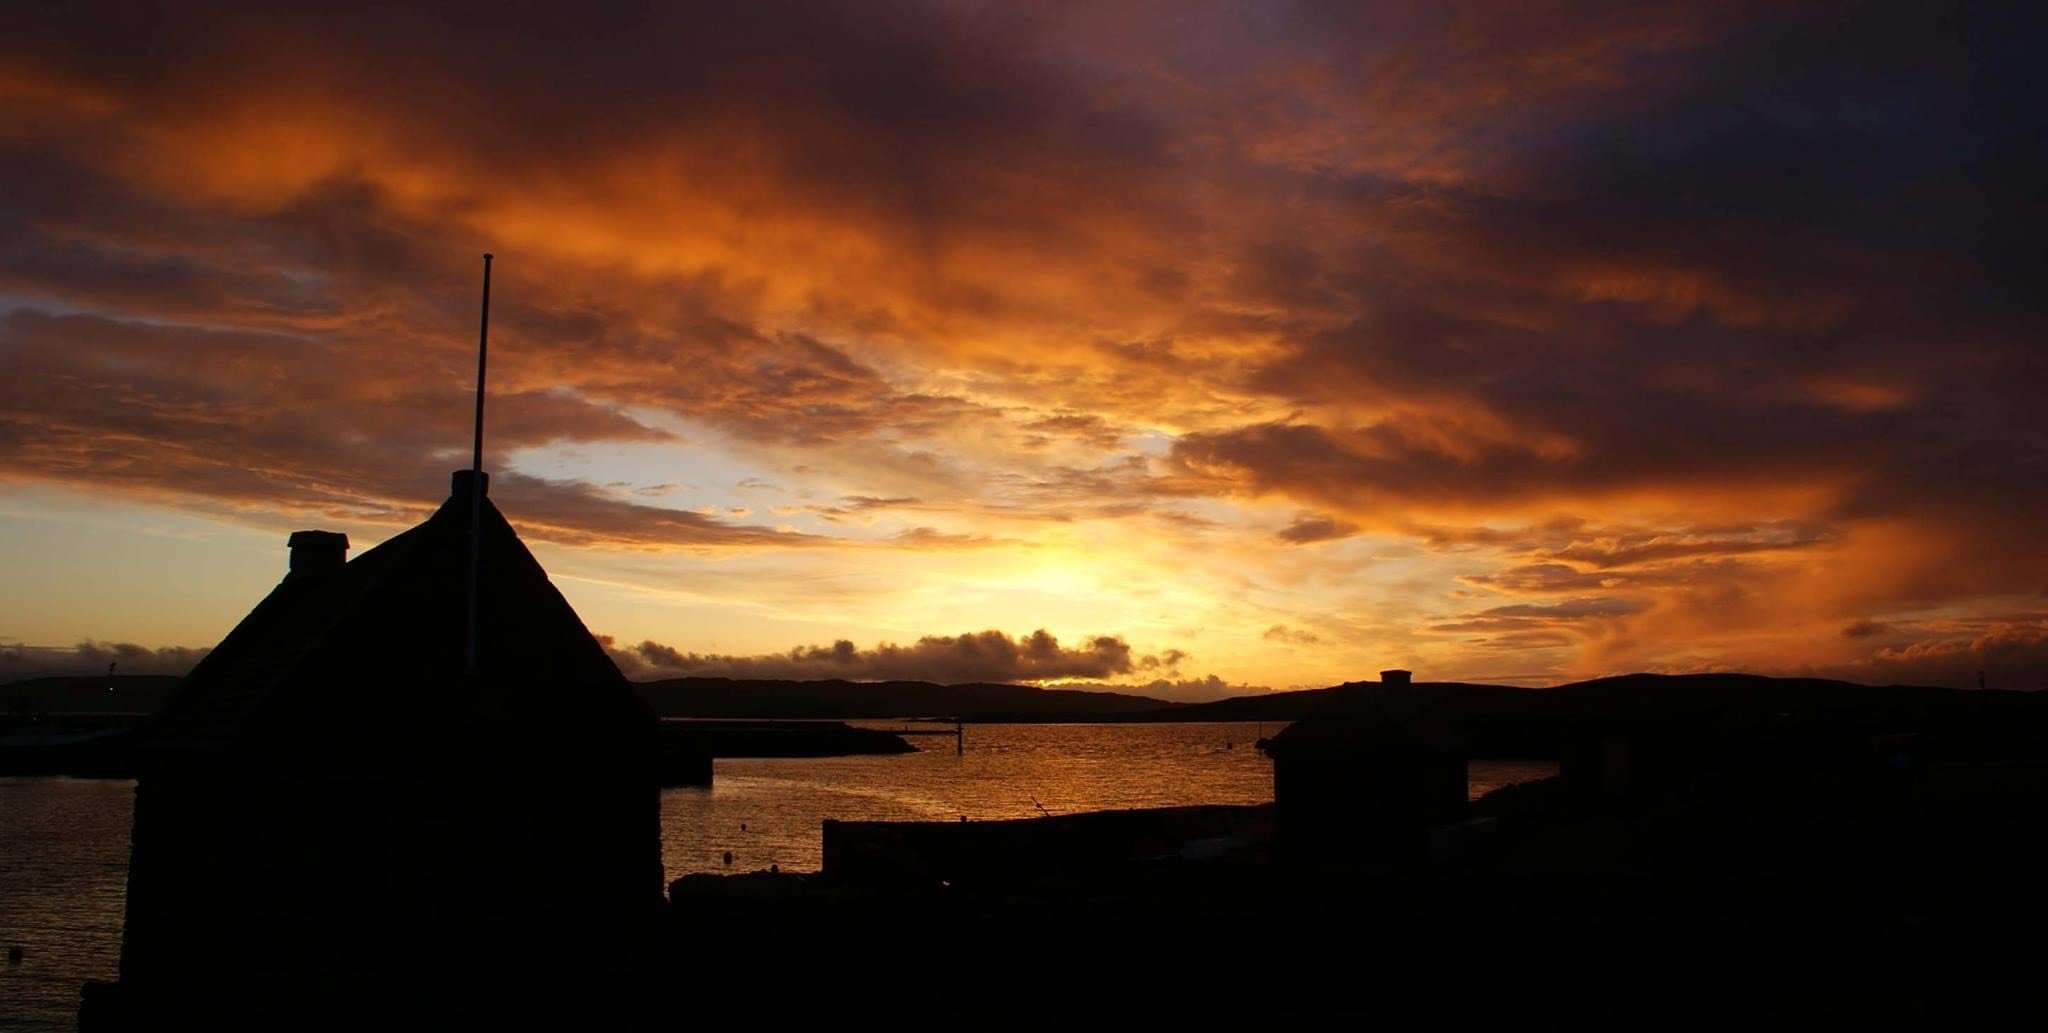 Shetland dialect and a sense of identity